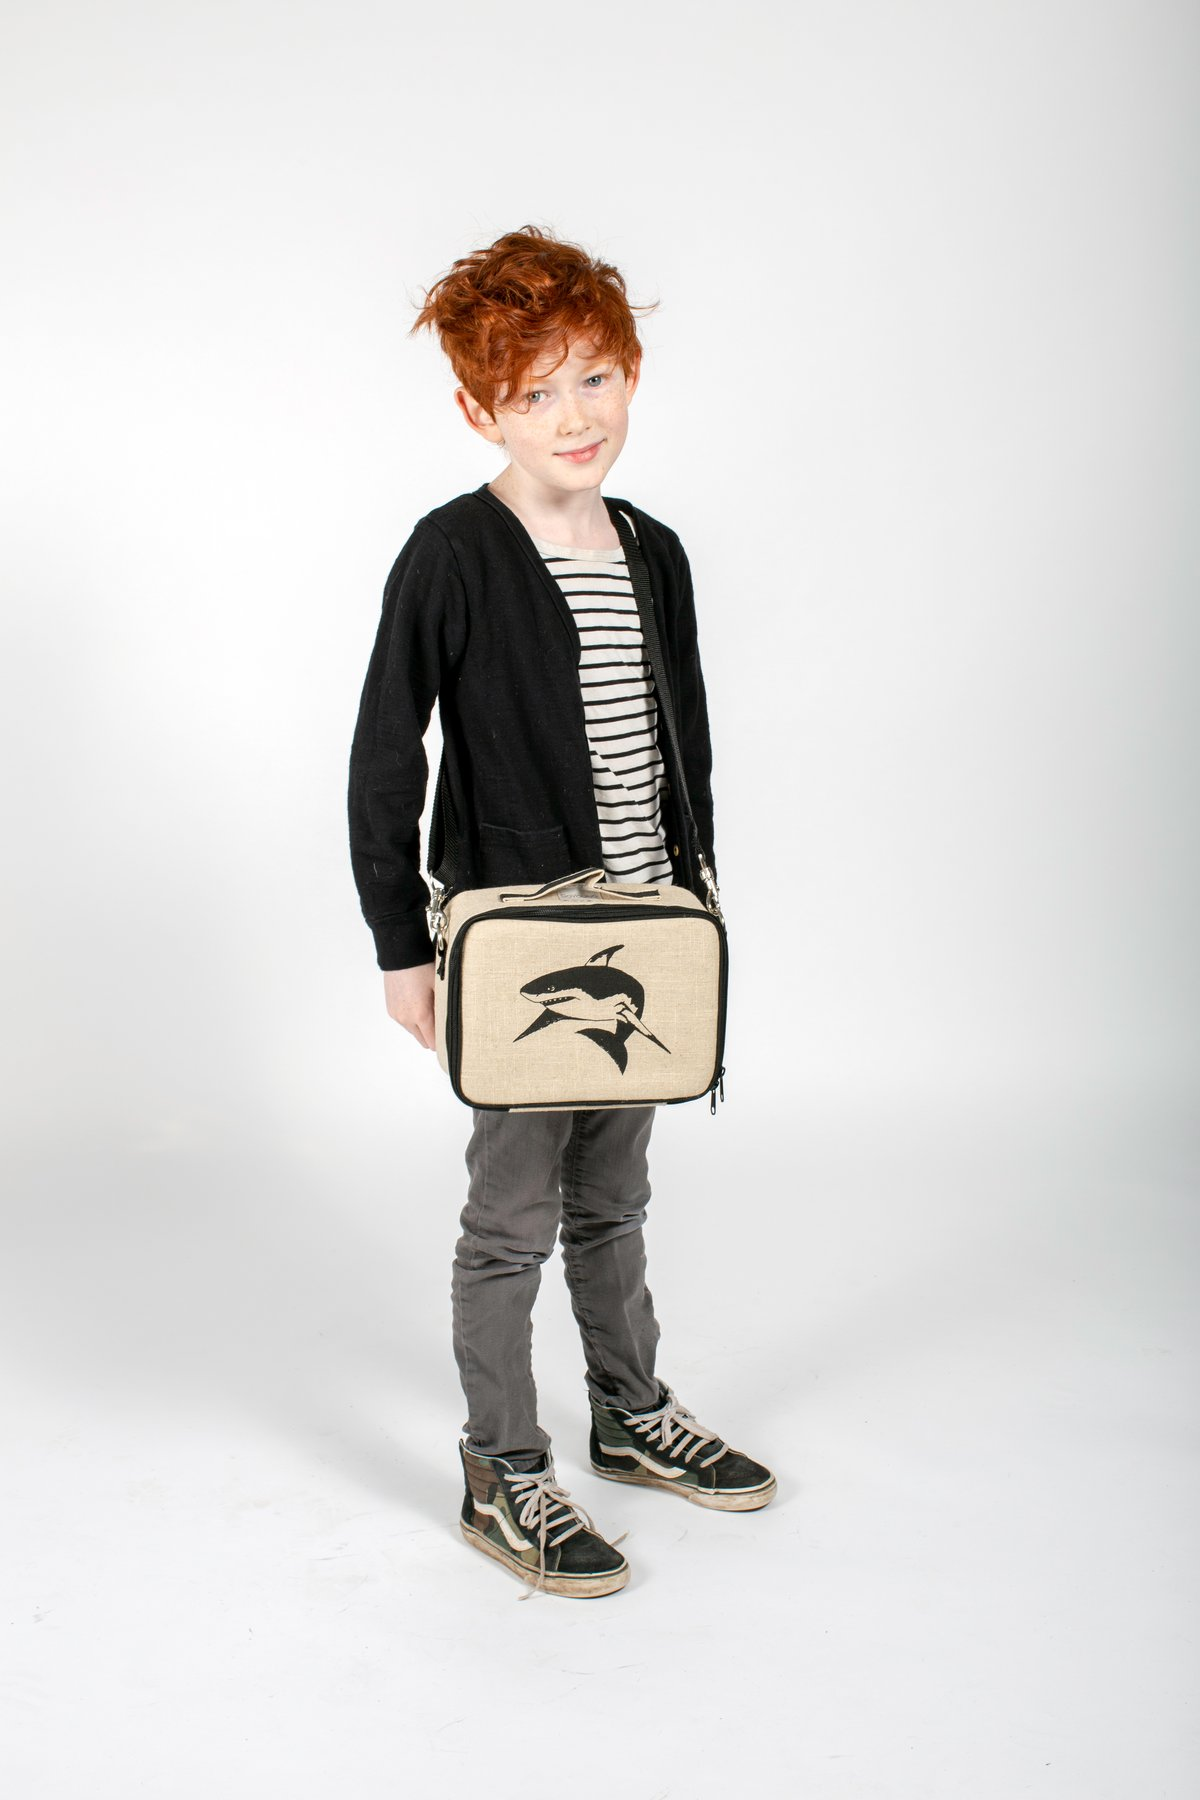 SoYoung lunch boxes hold up so well and come in such cool patterns and styles.